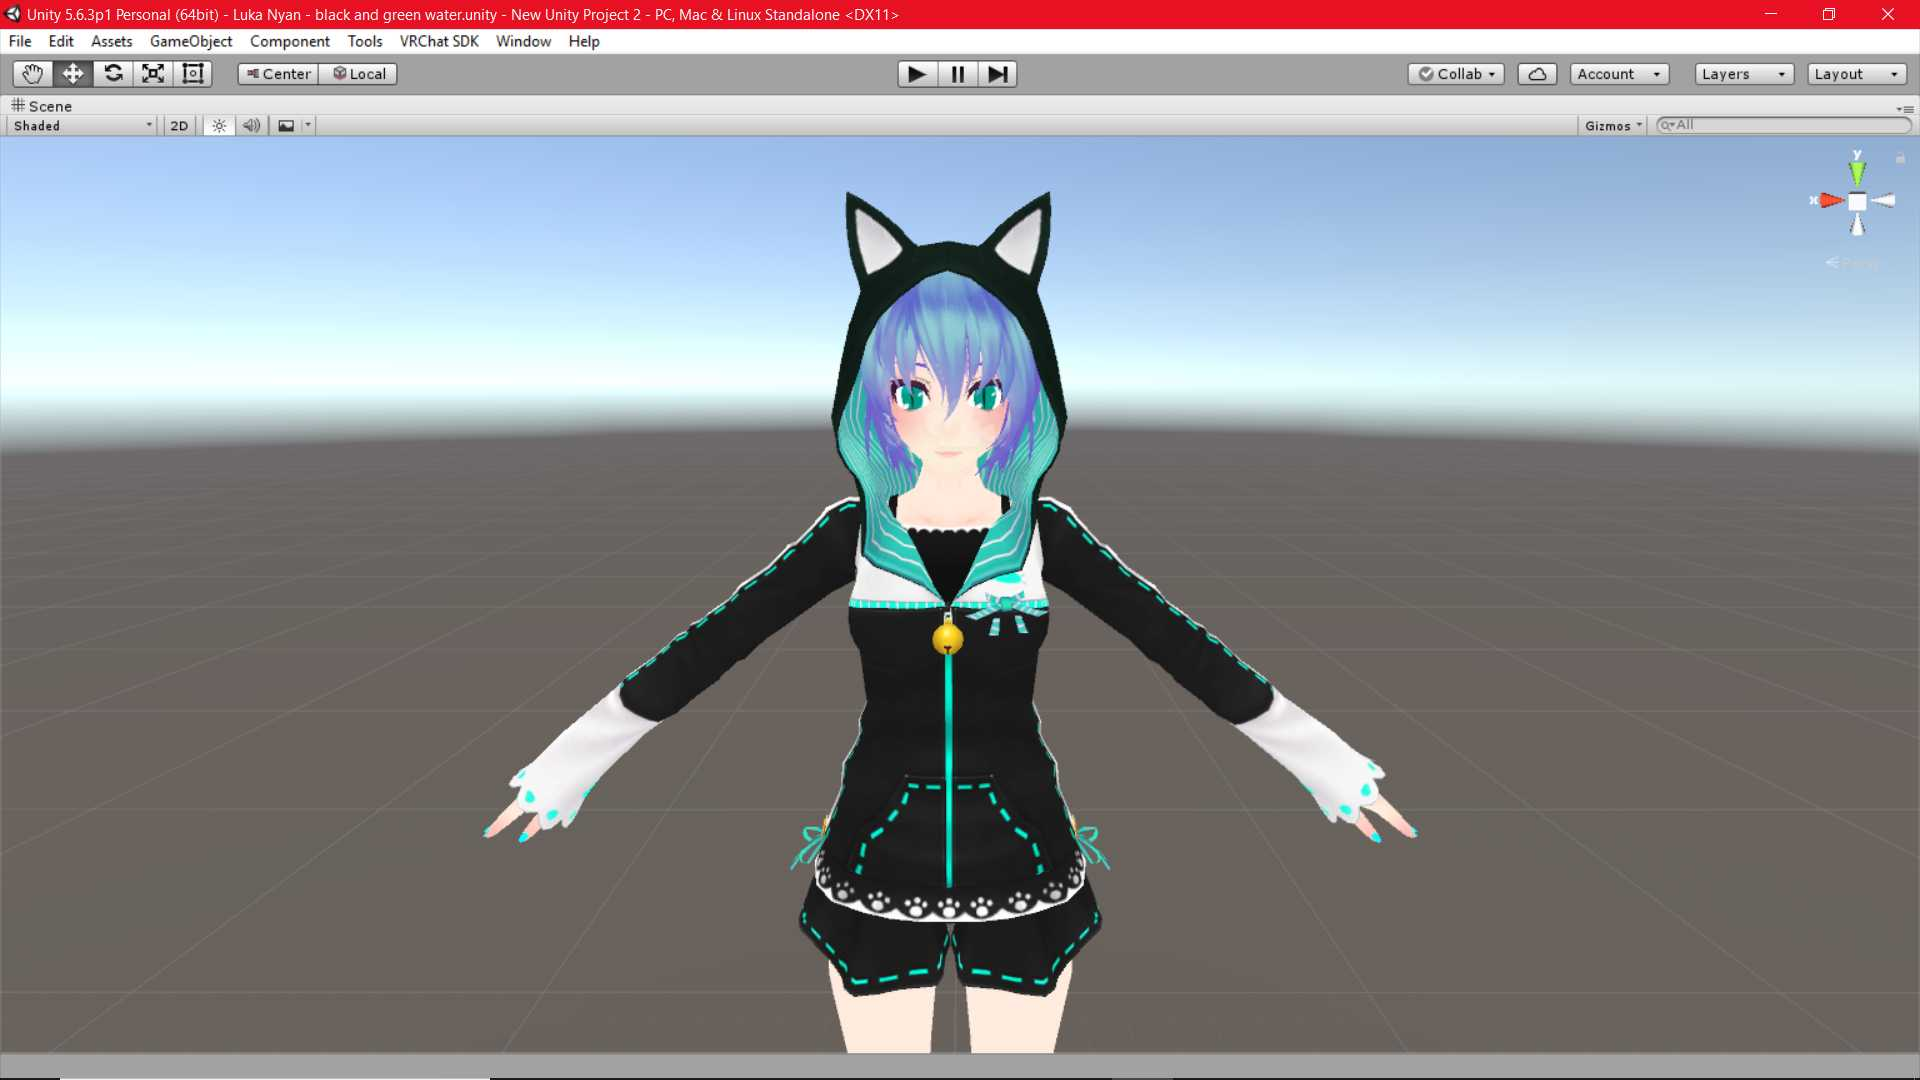 VRCMods - Luka Nyan - black and green water(modified model) - VRChat